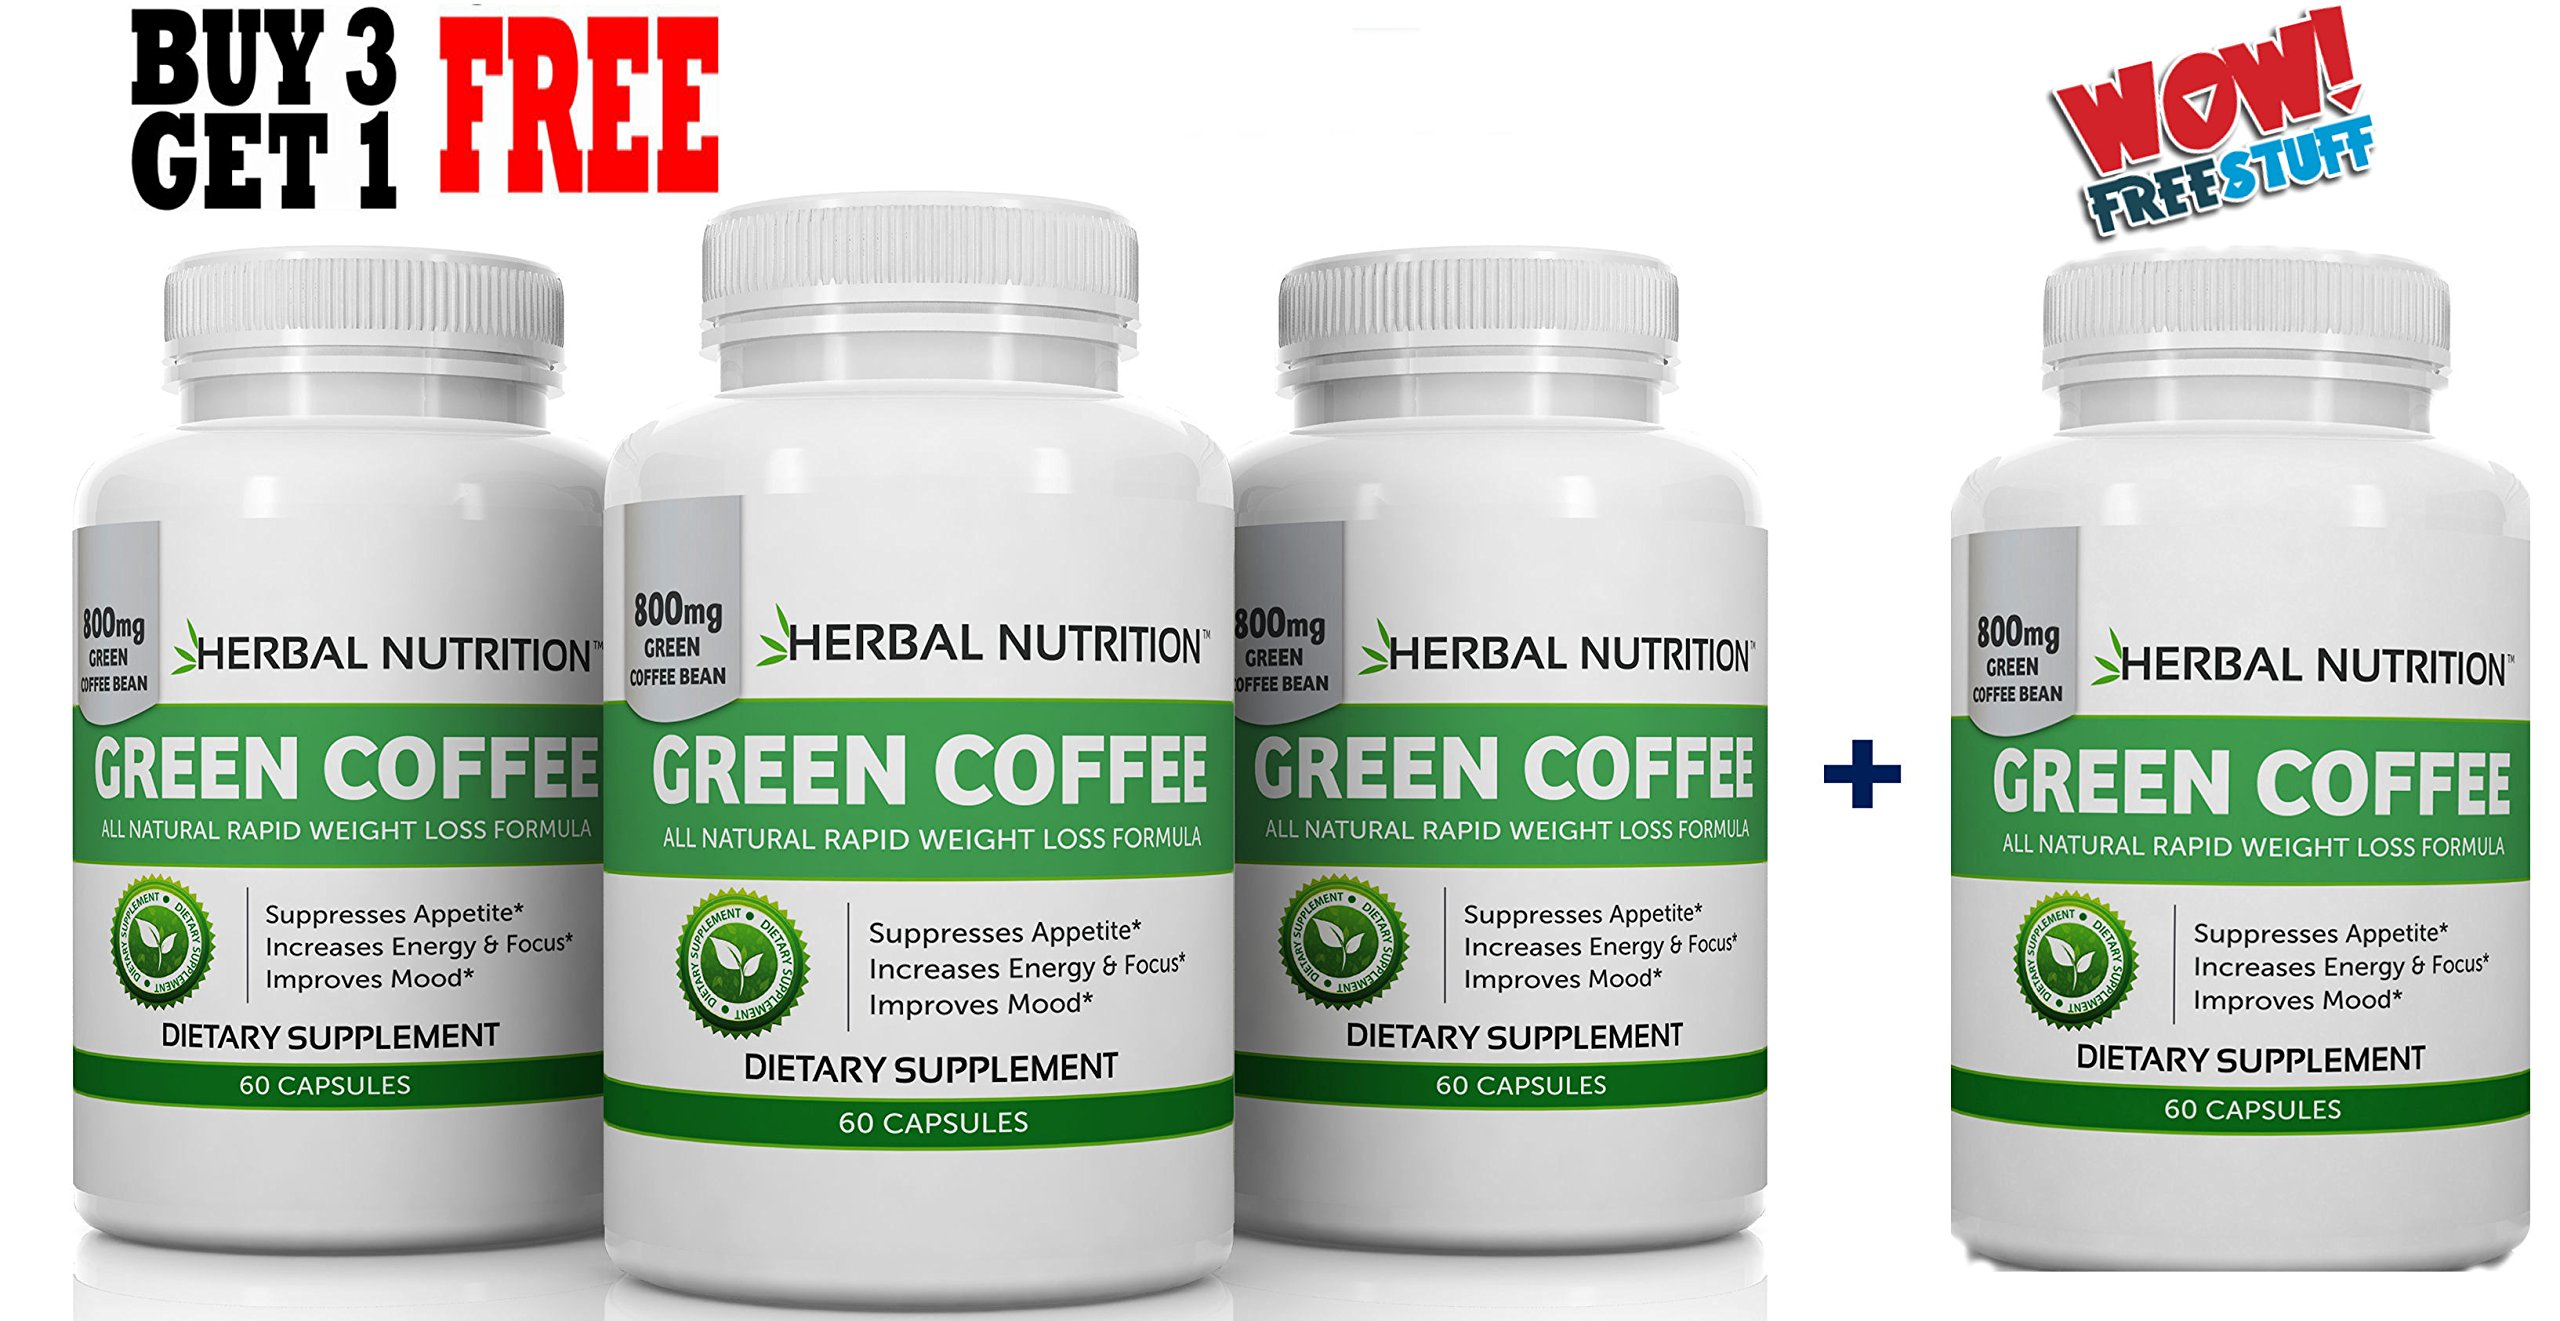 Green Coffee Extract for Weight Loss 240 Capsules 4 Month Supply 800mg at 50% Chlorogenic Acid Weight Loss Supplement Free Shipping by Herbal Nutrition